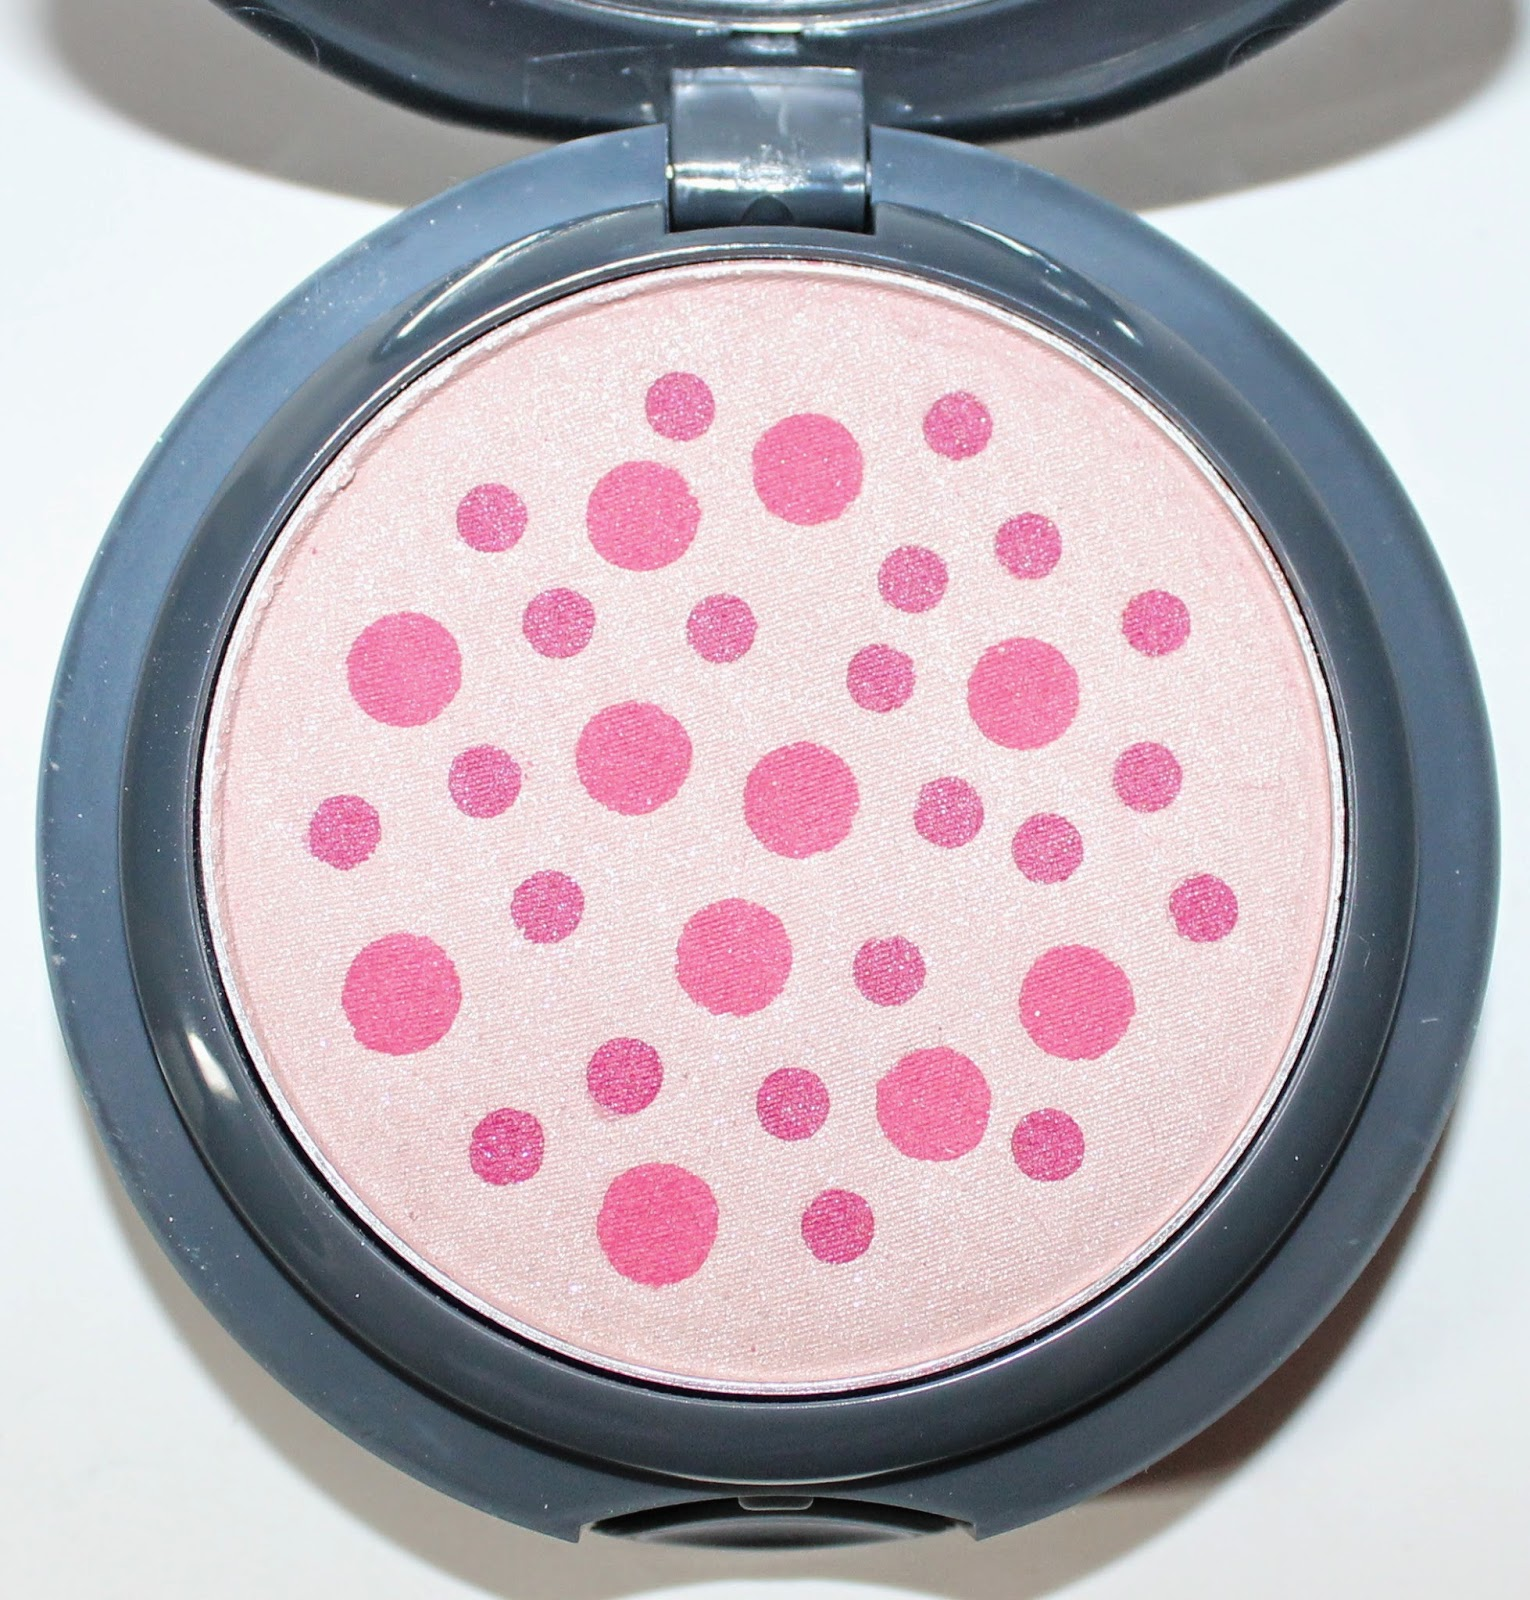 Almay Smart Shade Powder Blush in 10 Pink